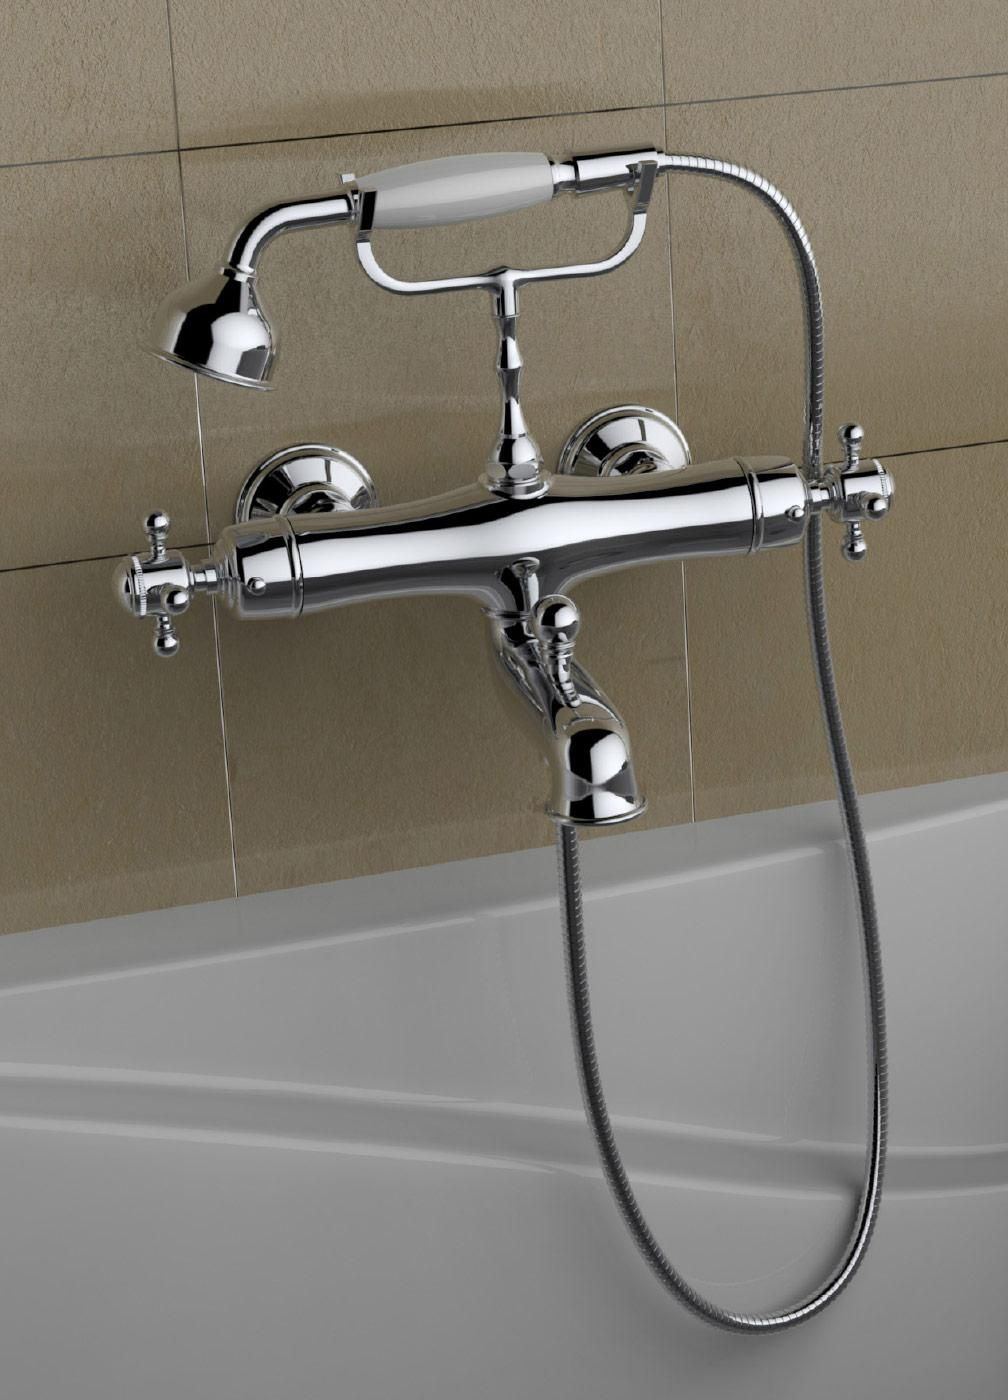 American Modern Wall Mount Chrome Clawfoot Tub Faucet Exposed